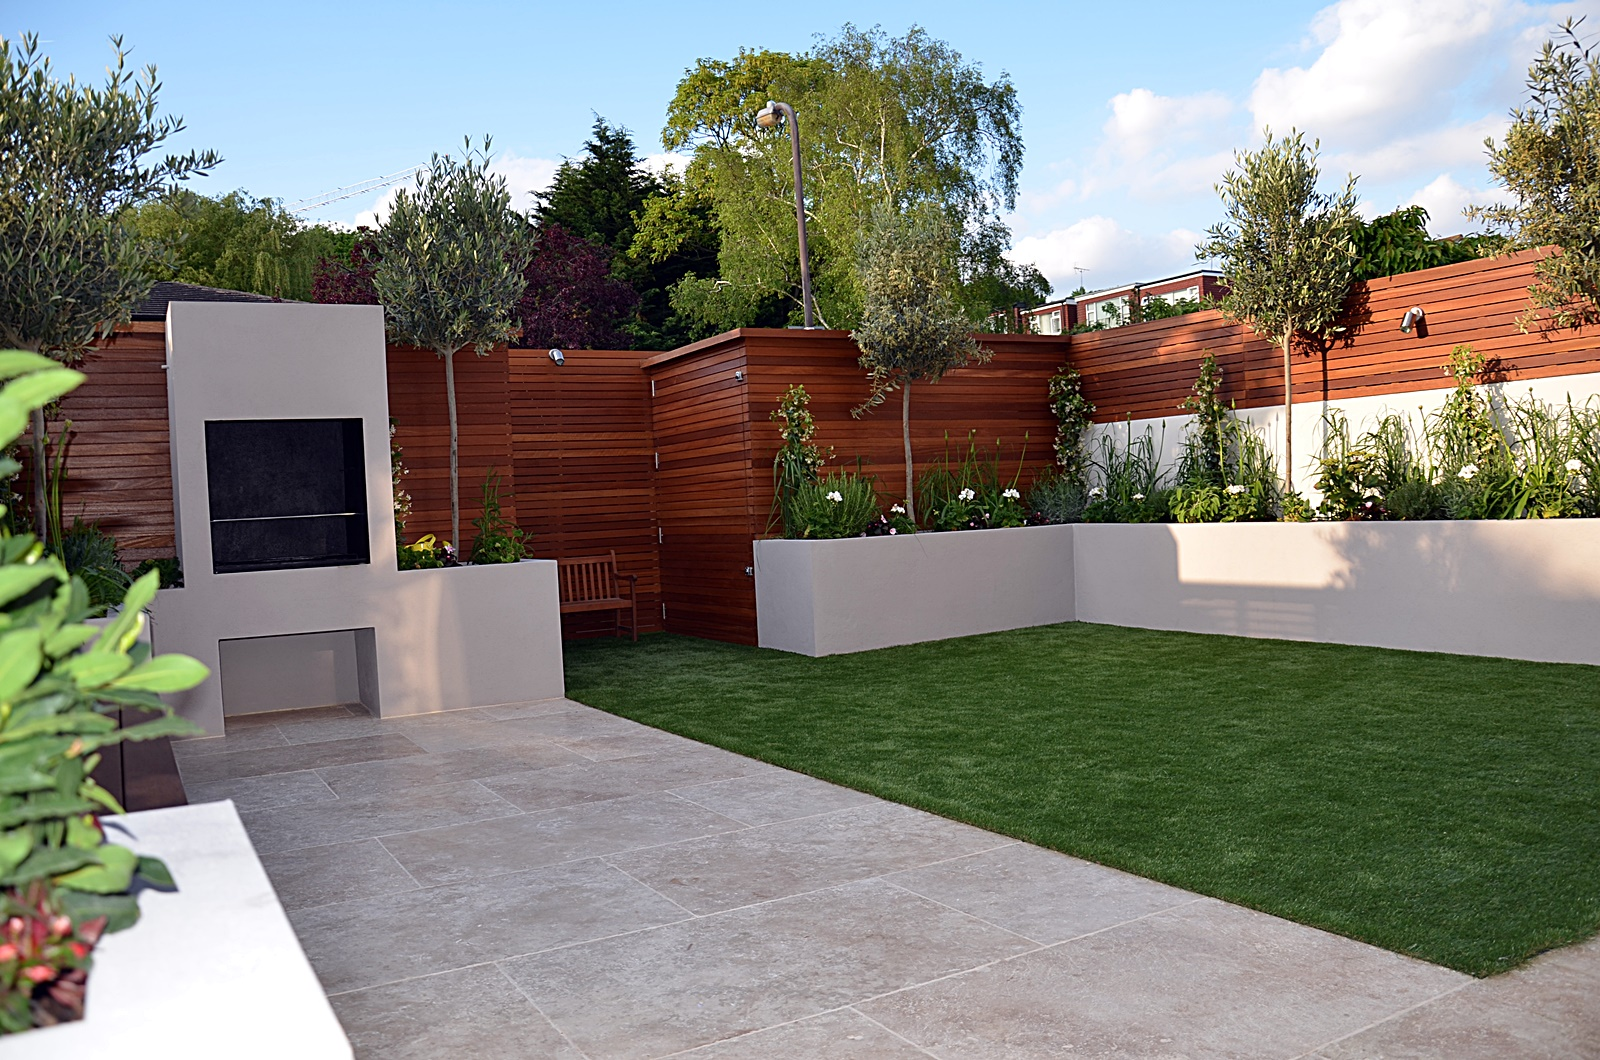 BBQ fireplace modern garden design designer balham clapham battersea wandsworth london